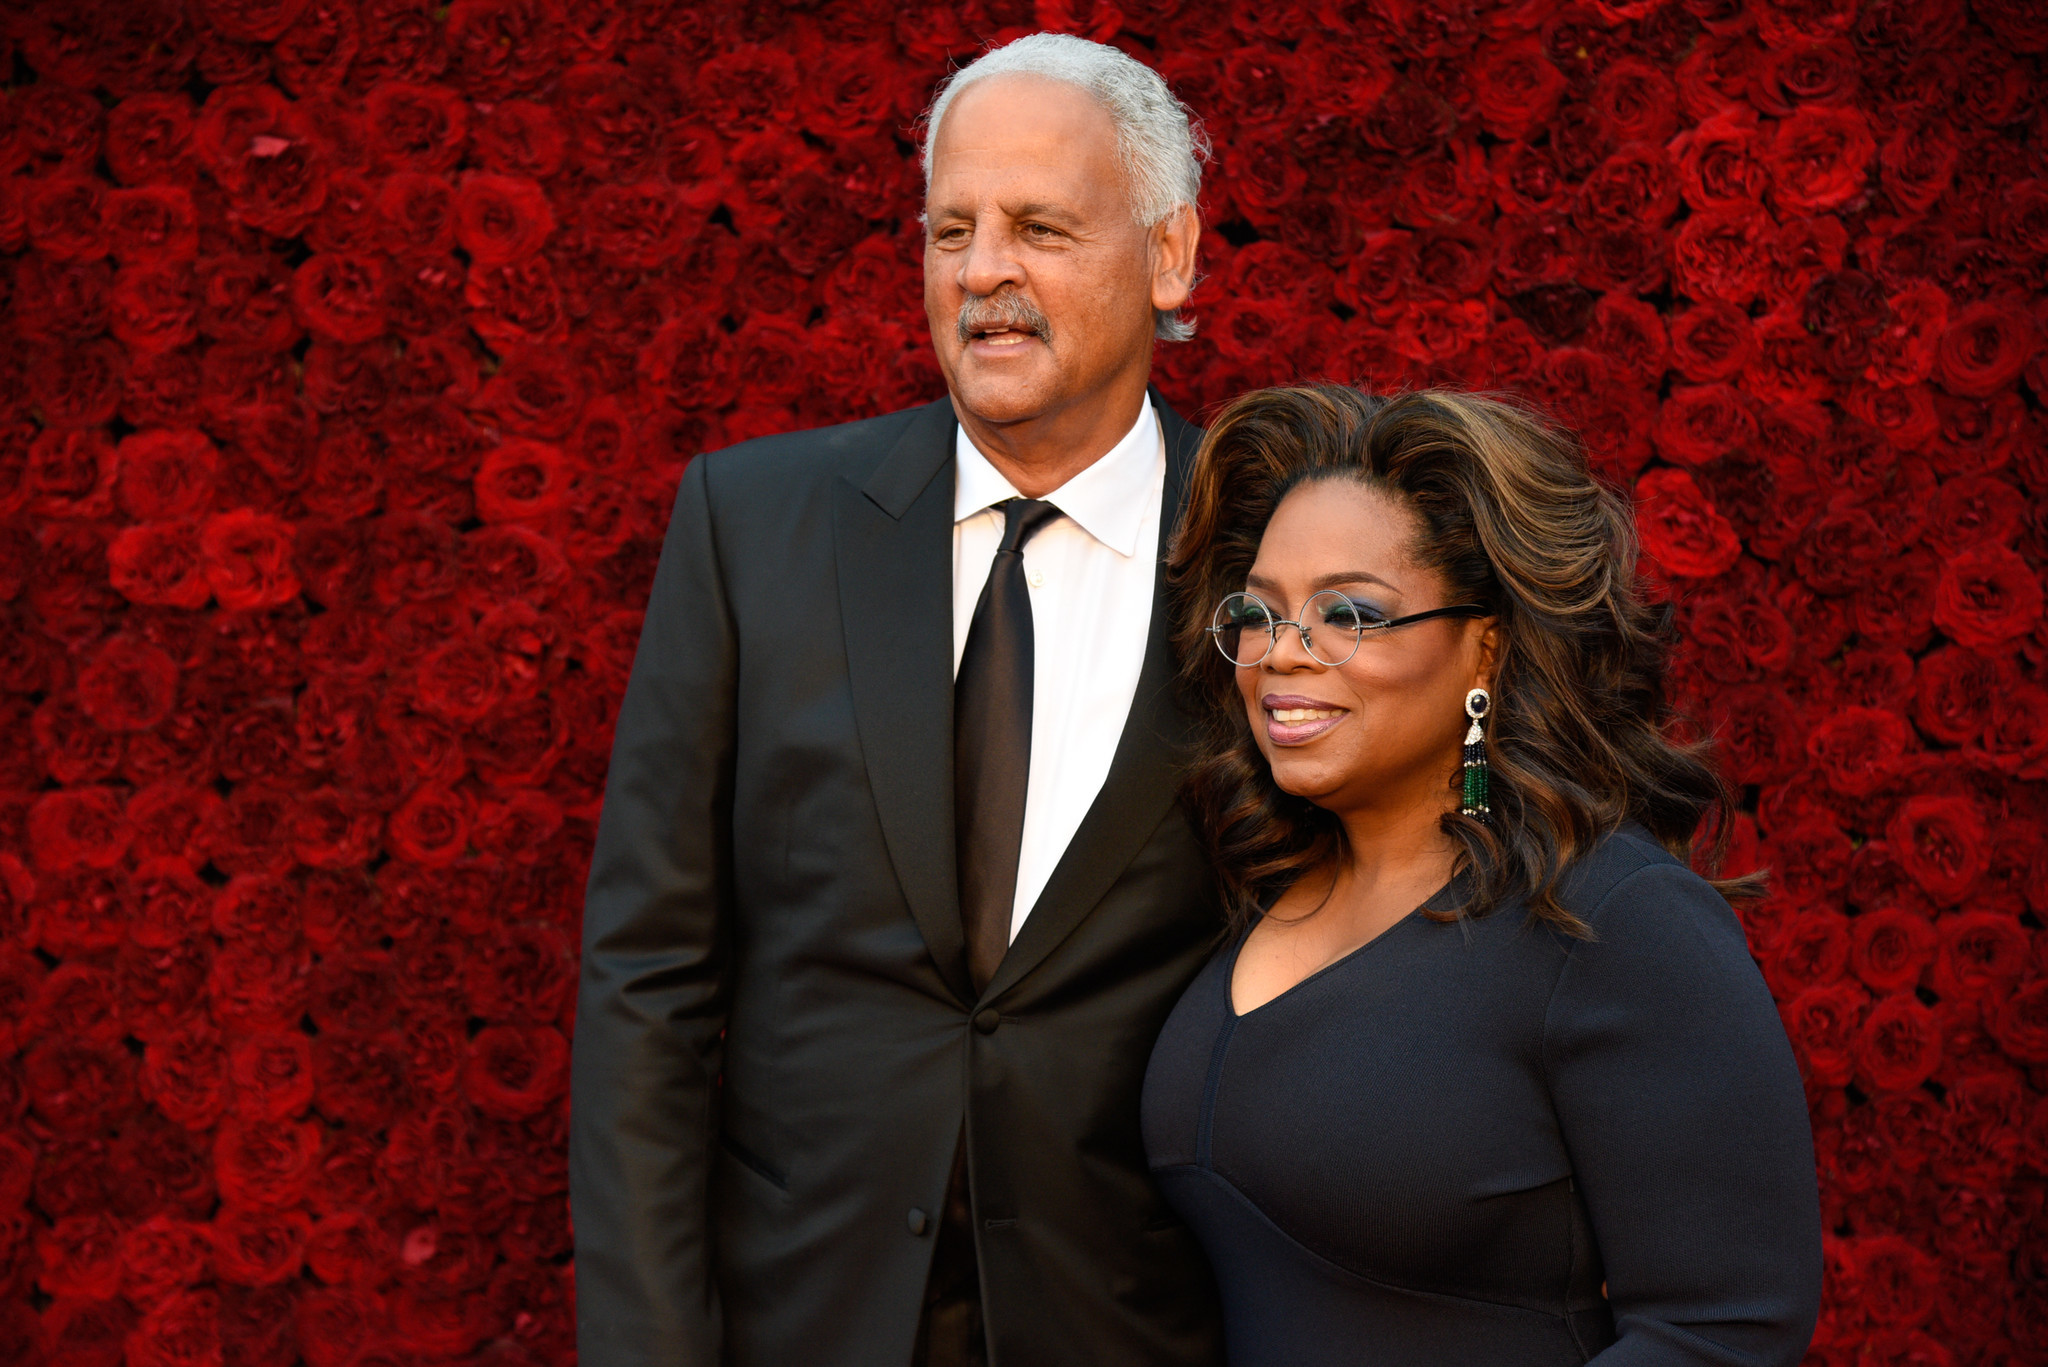 Oprah says Stedman Graham initially didn't take coronavirus seriously, is now quarantining in guest house